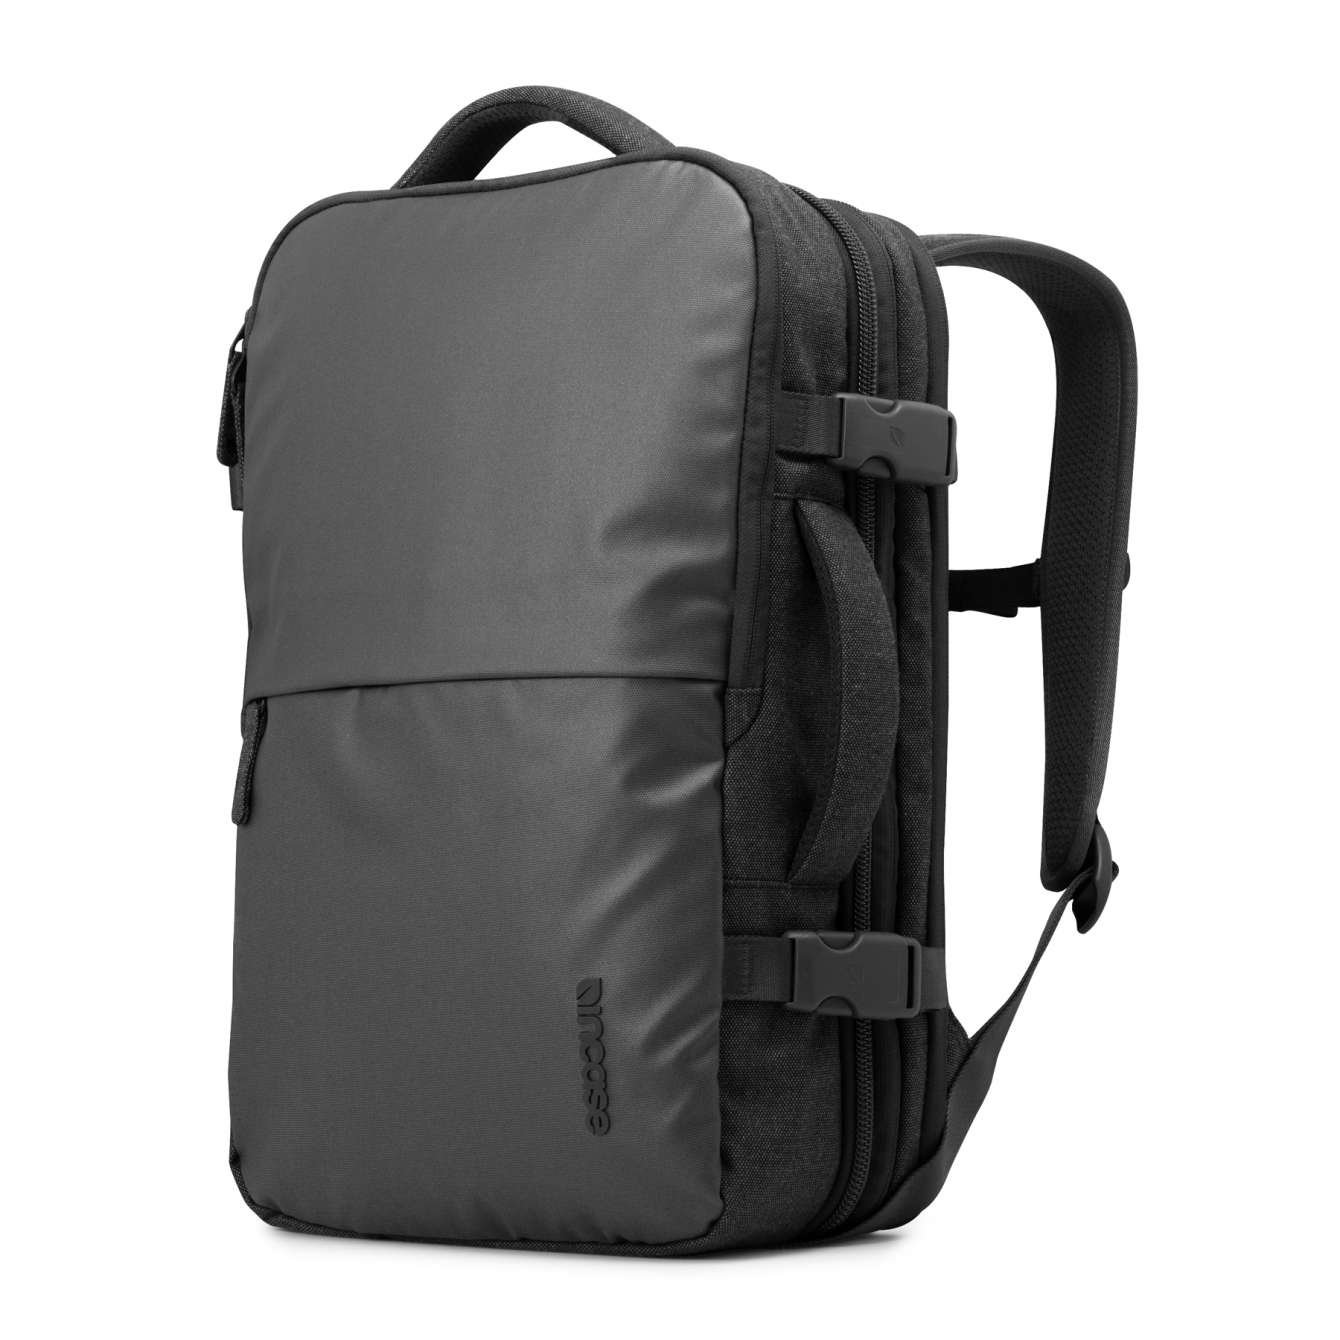 Incase Men's Travel Backpack, Black, One Size by Incase Designs